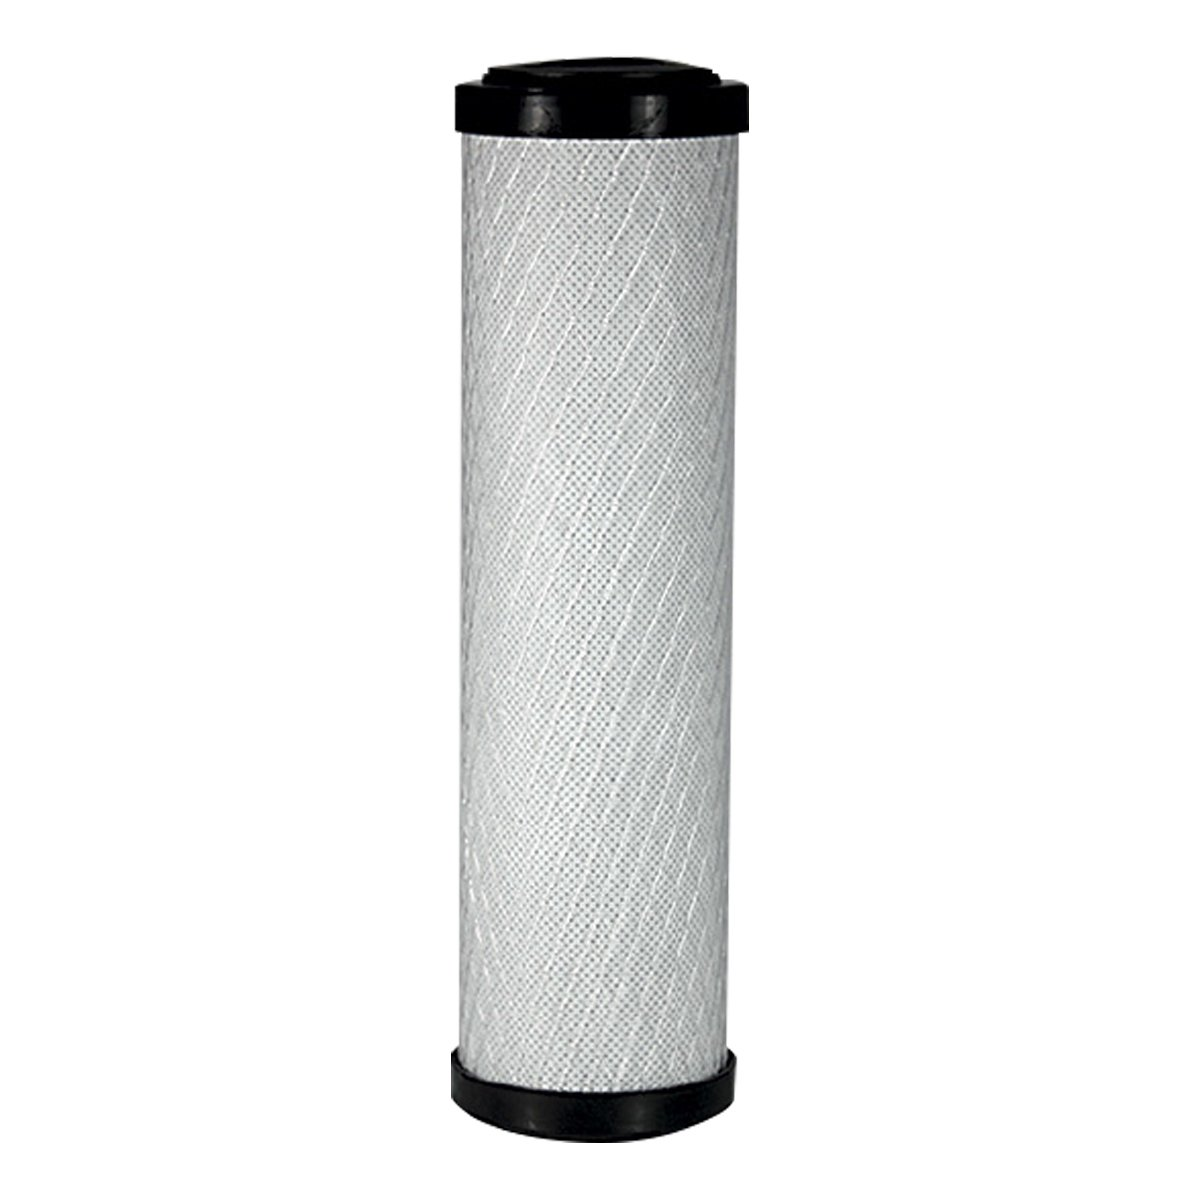 EZ-FLO 22053 Advanced Carbon Block Filter